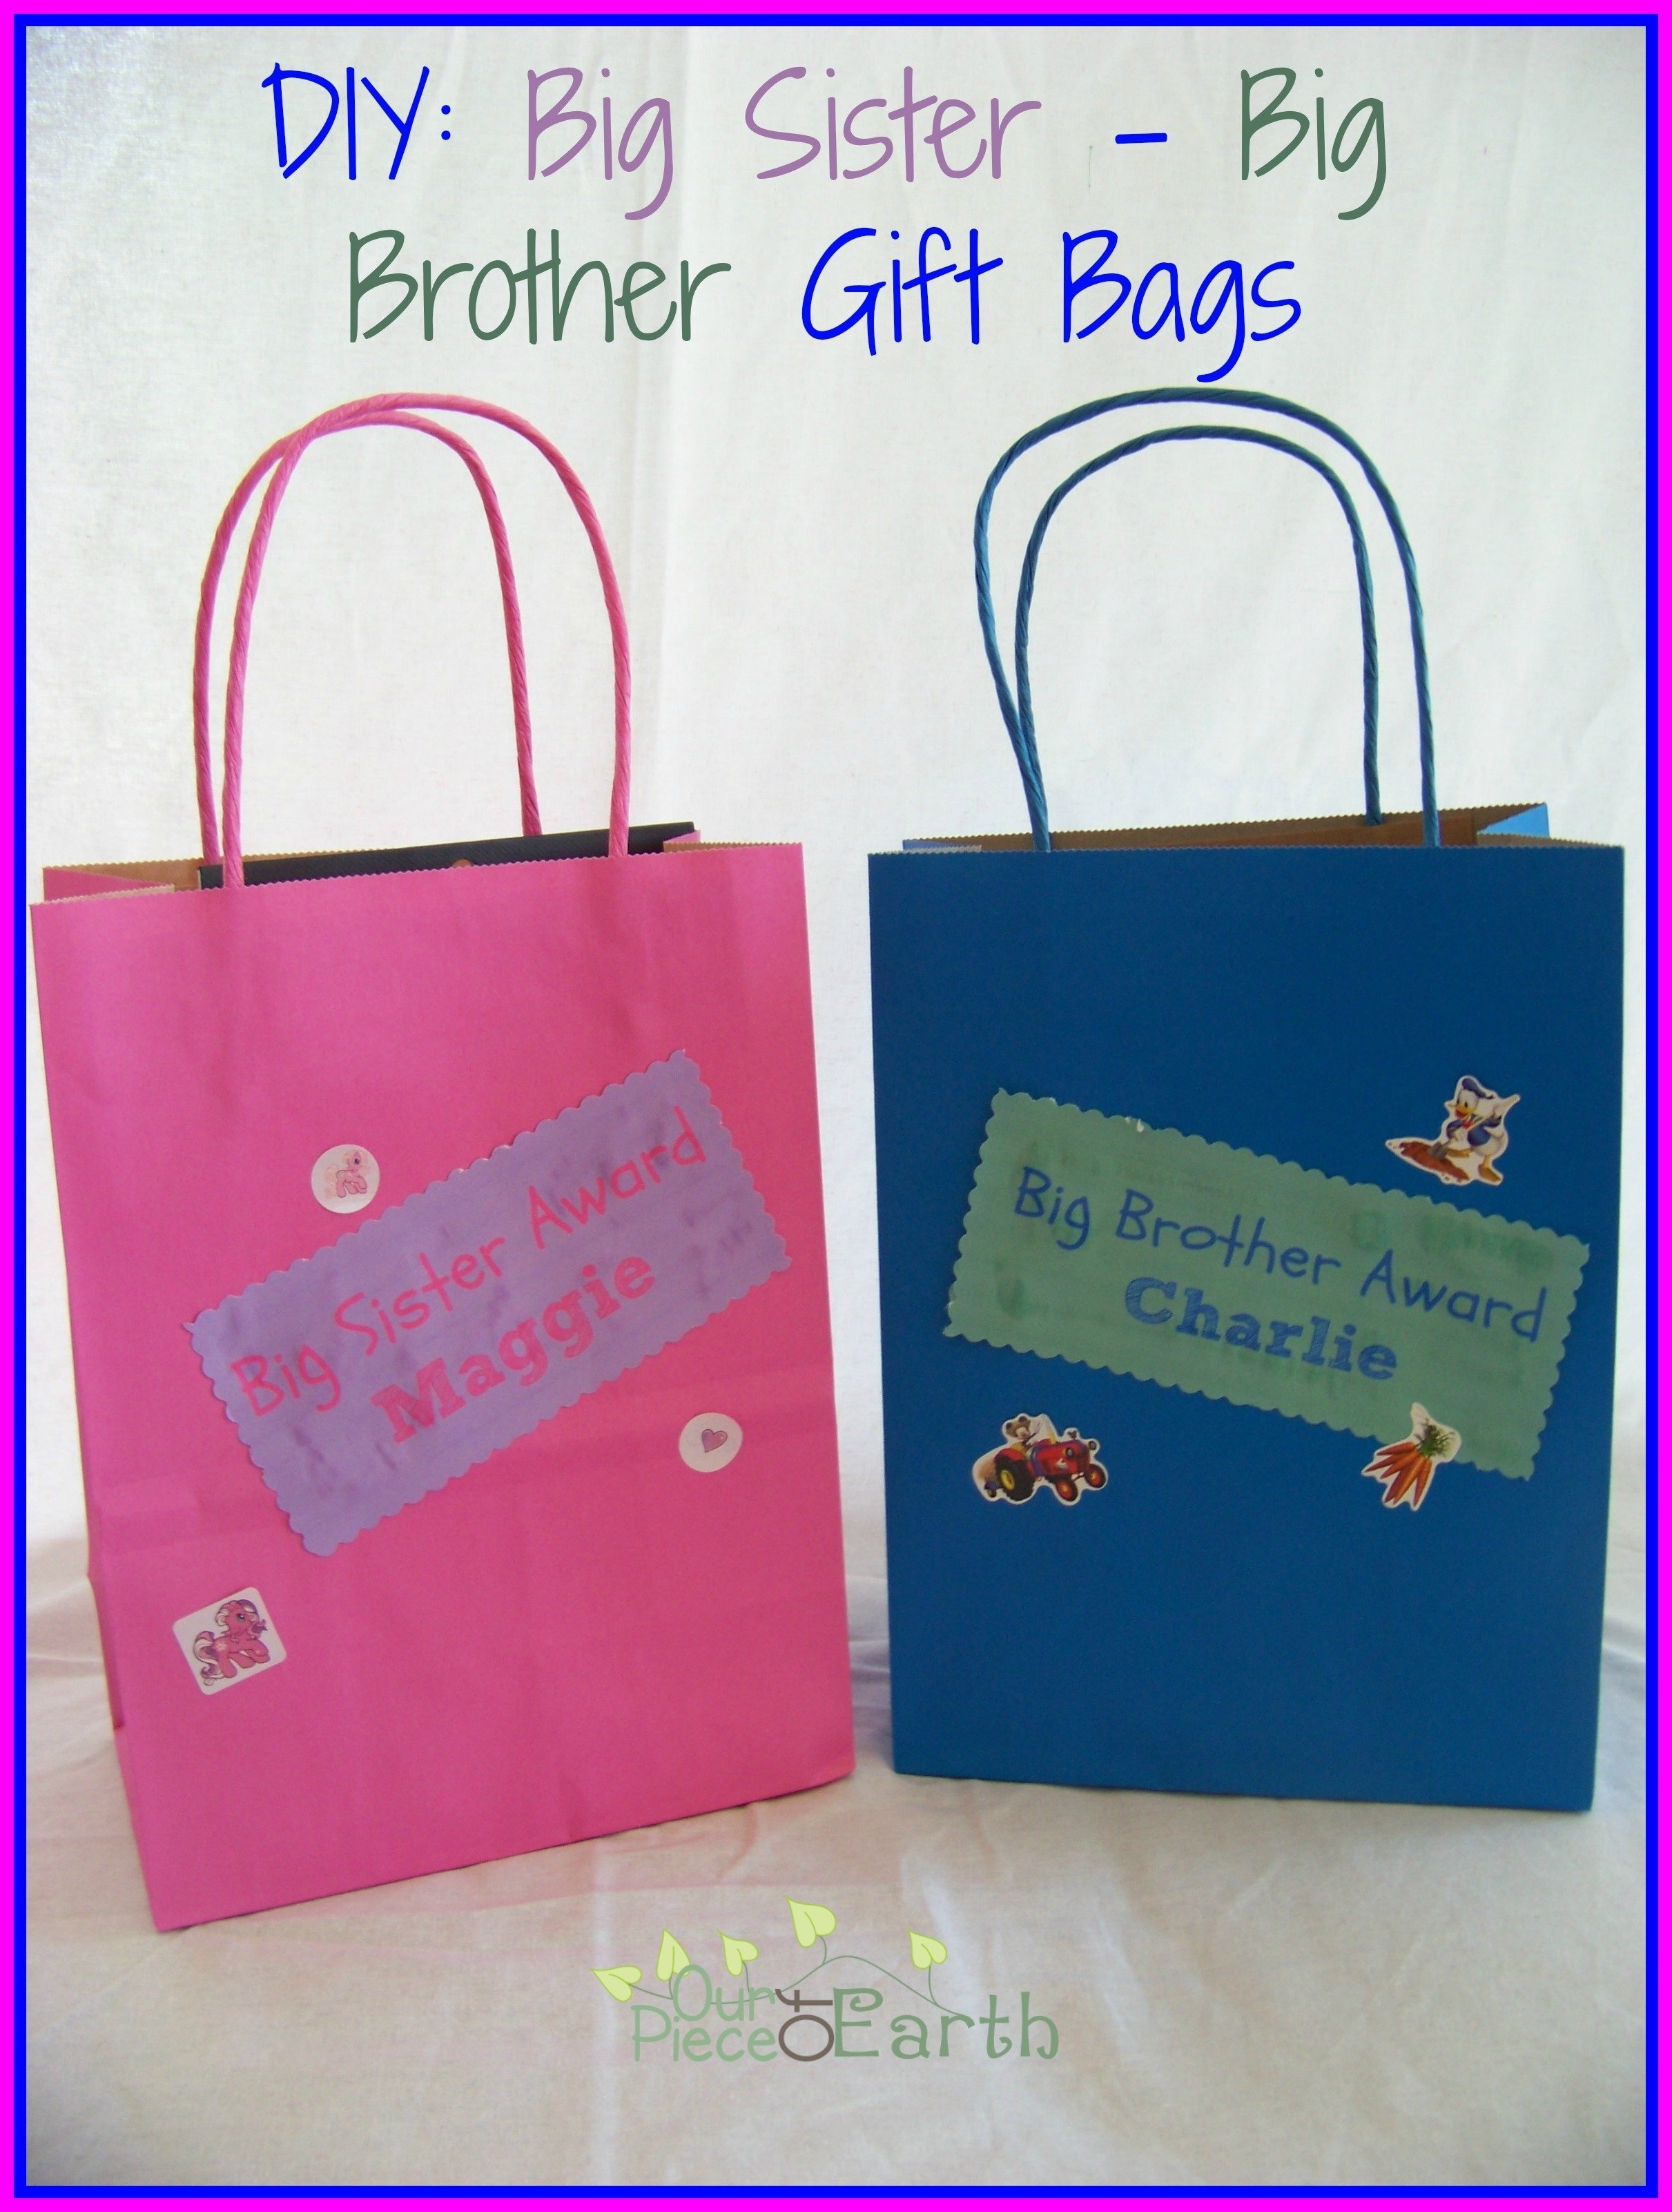 10 Unique Gift Ideas For Big Sister big sister big brother gift bags our piece of earth 3 2020